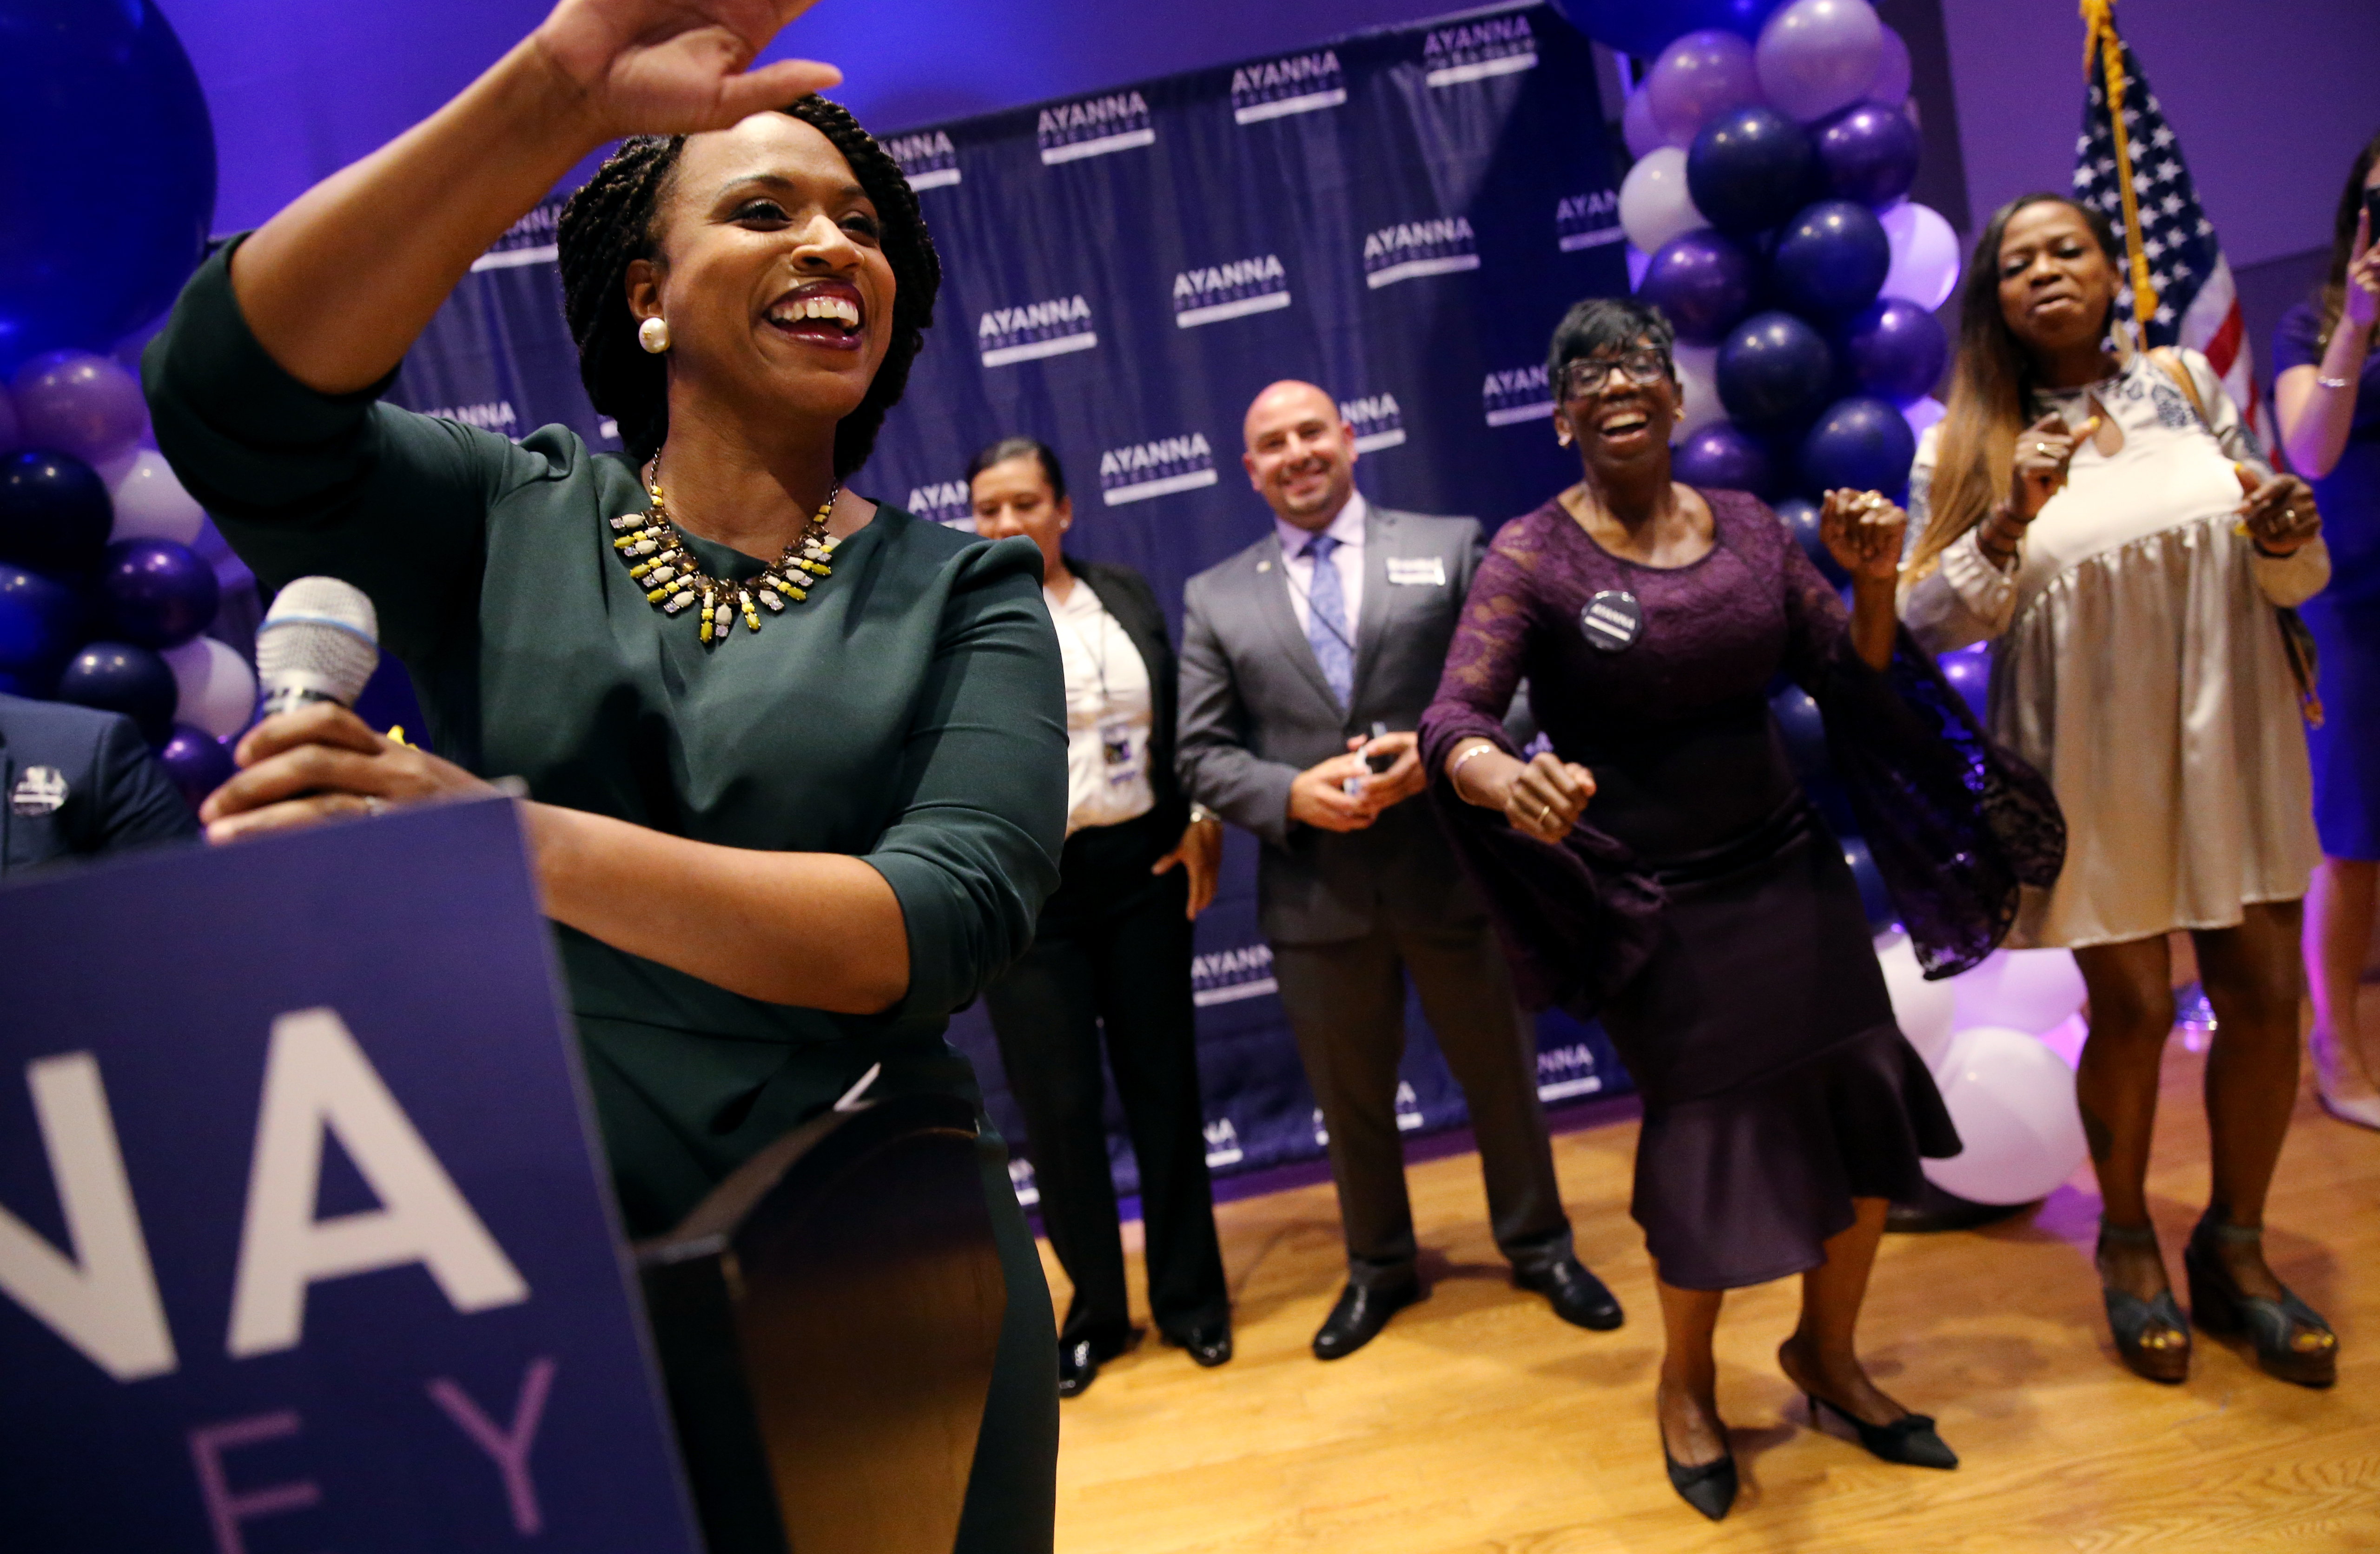 Democrat Ayanna Pressley celebrates her victory in Massachusetts 7th Congressional district primary on September 4, 2018.